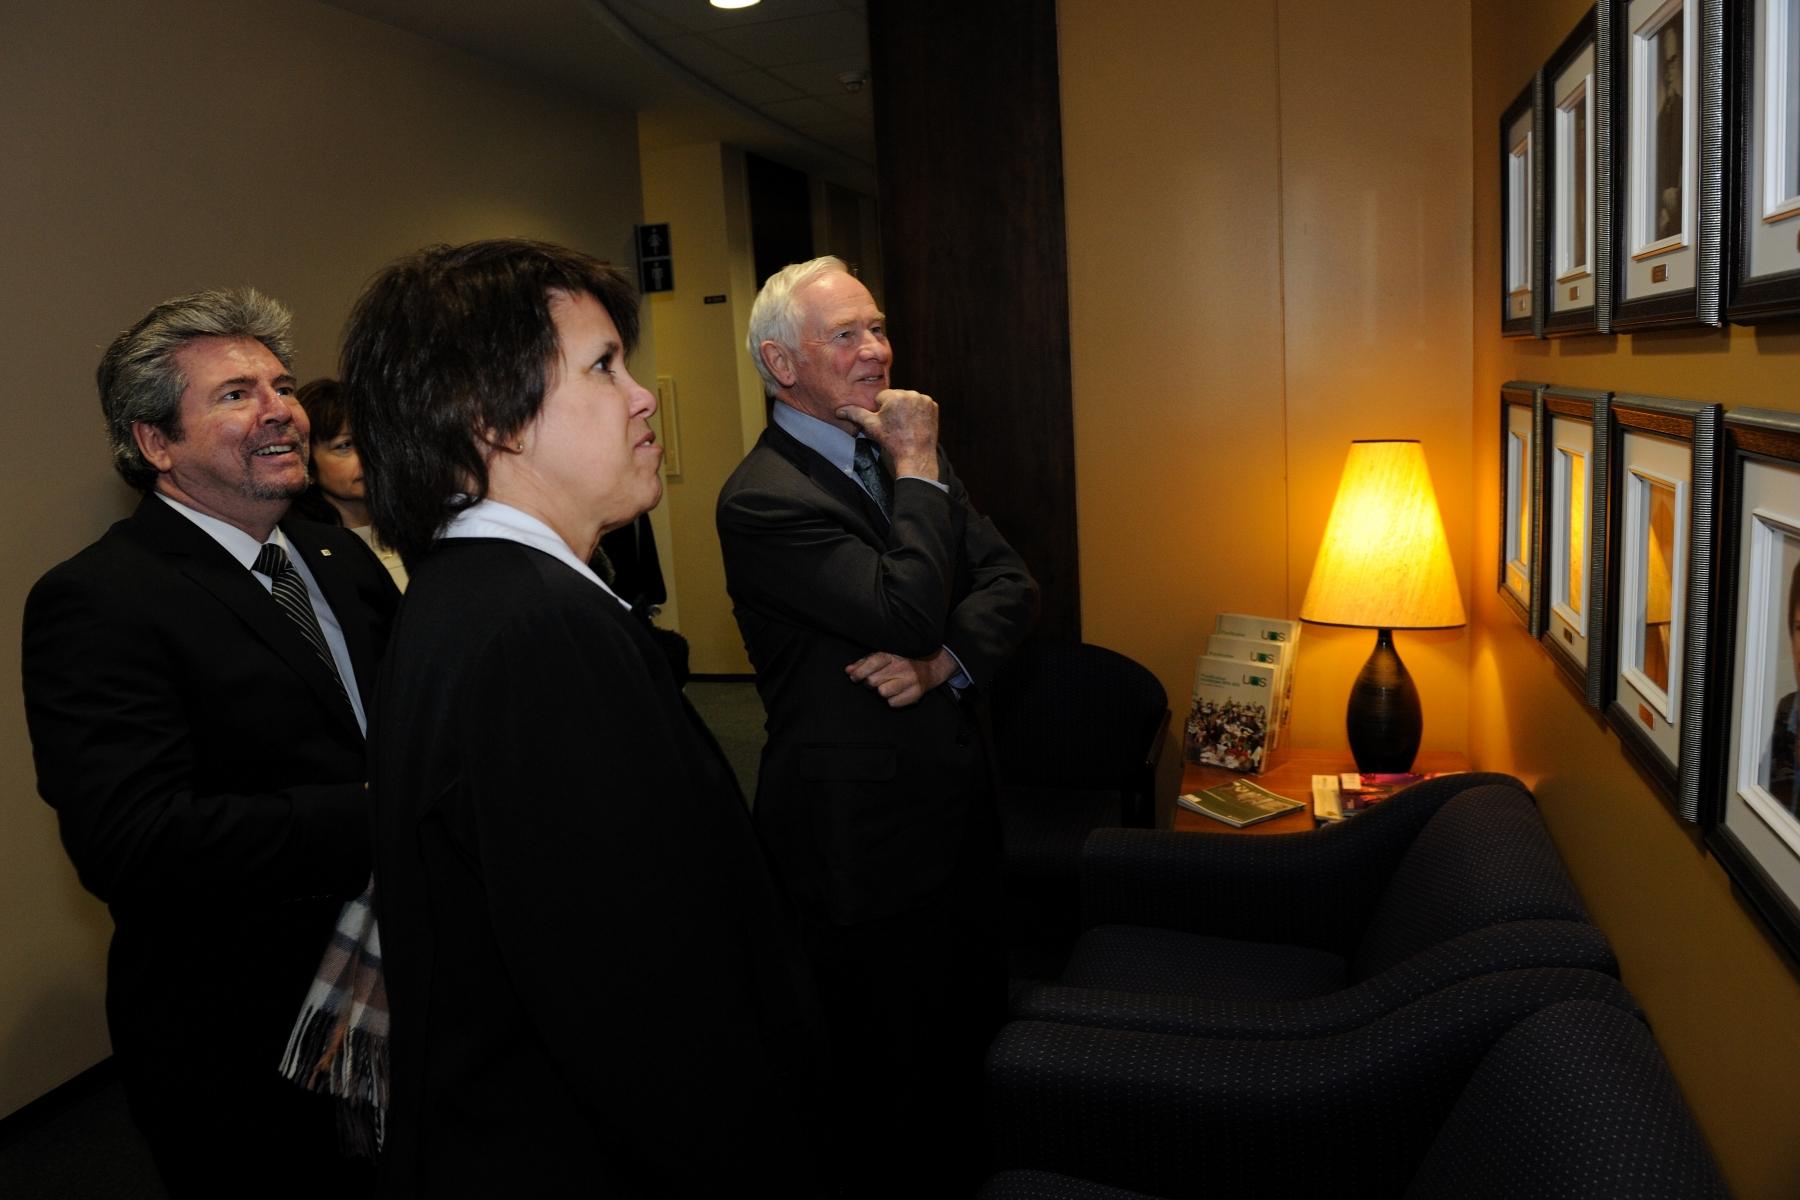 The Governor General then proceeded to the Université de Sherbrooke where he met with professor Luce Samoisette, University president. Upon his arrival, His Excellency looked at the wall of portraits of previous presidents of the University.